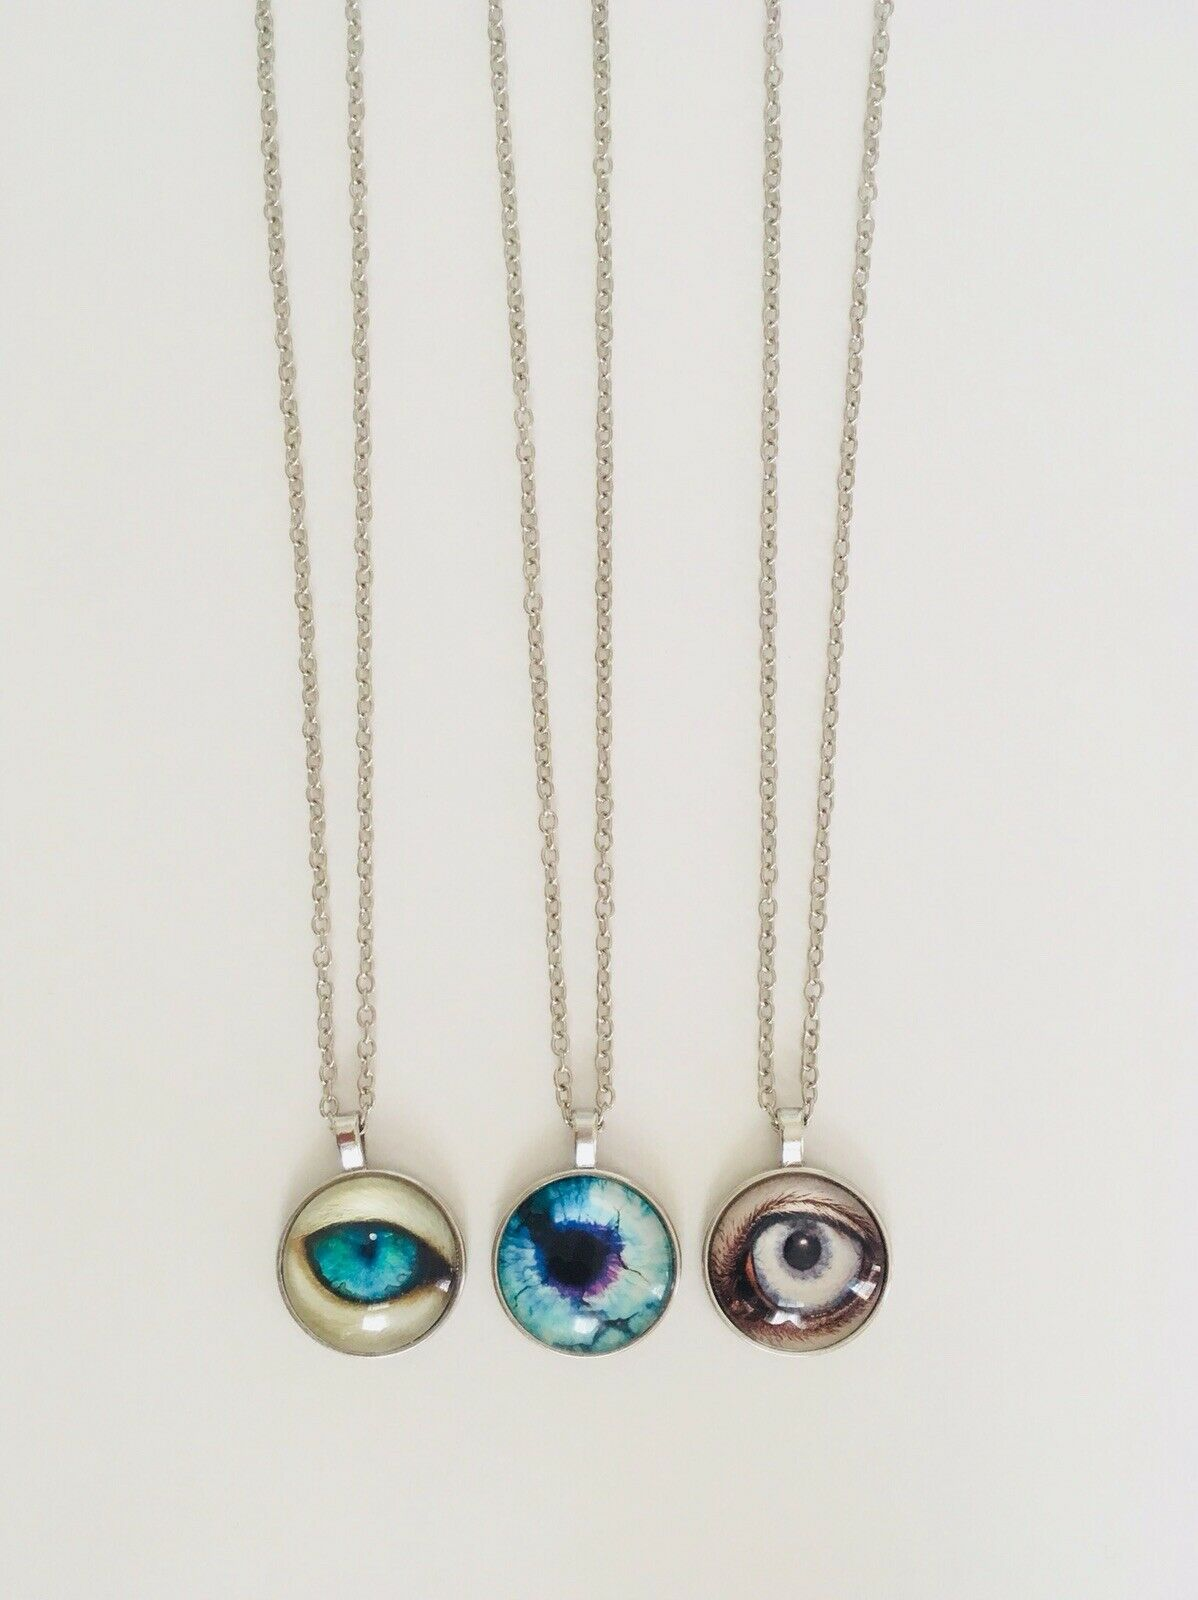 Women Men One Of A Kind Resin Animal Eyes Set Of 3 Necklace Pendants With Chains